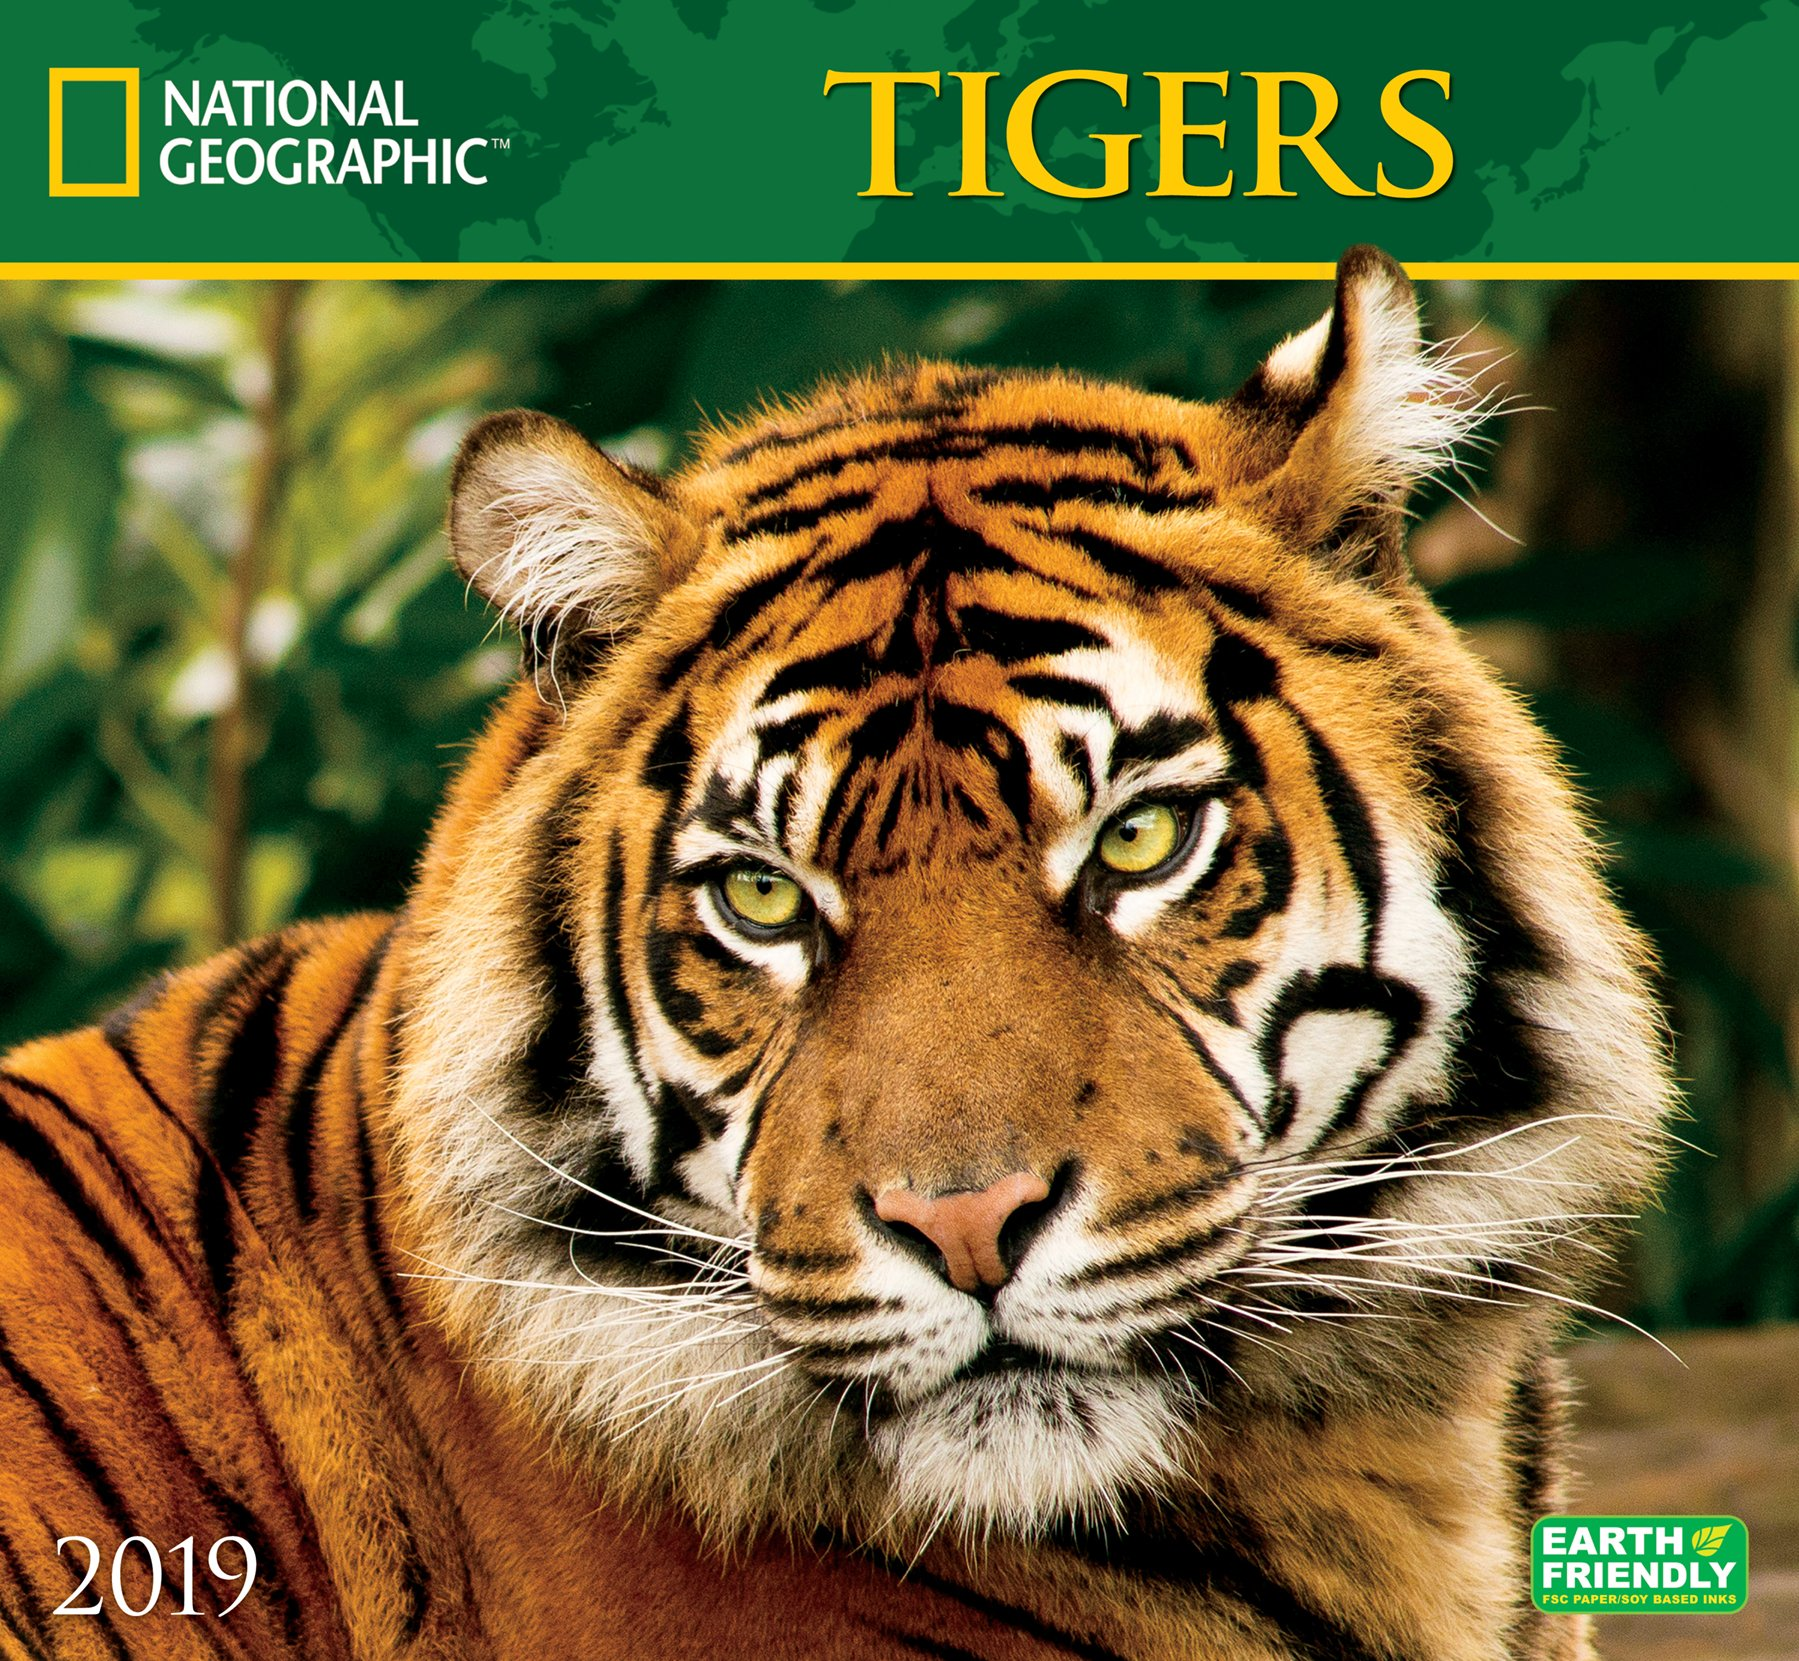 National Geographic Tigers 2019 Wall Calendar Zebra Publishing